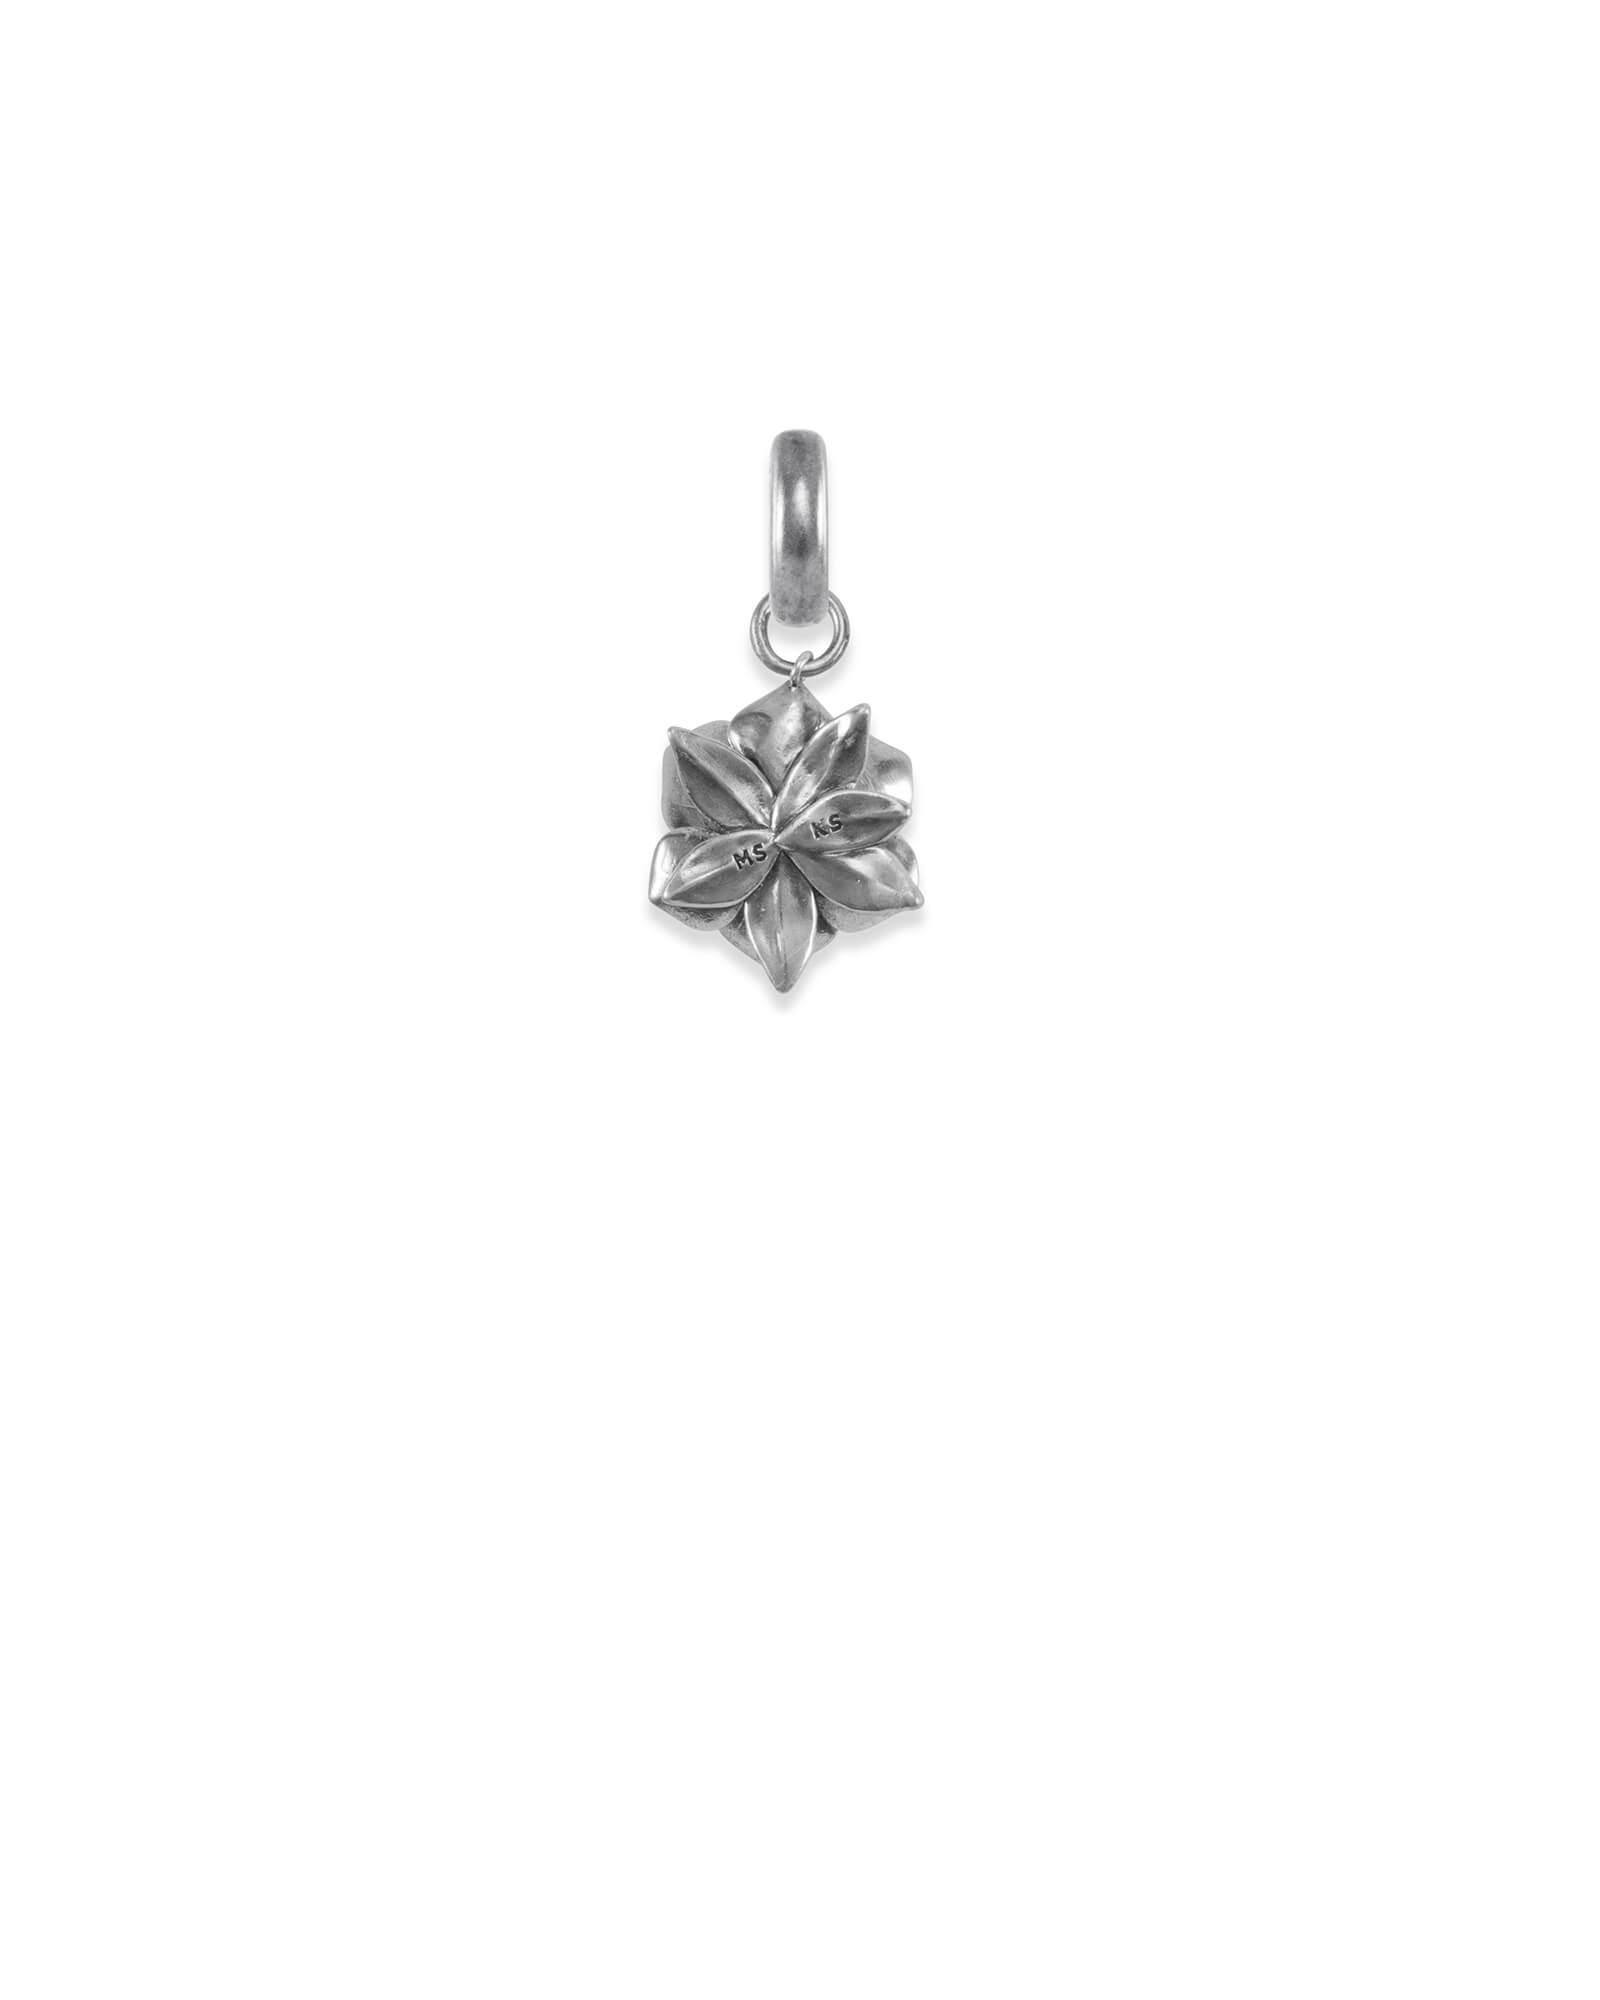 Mississippi Magnolia Charm in Vintage Silver